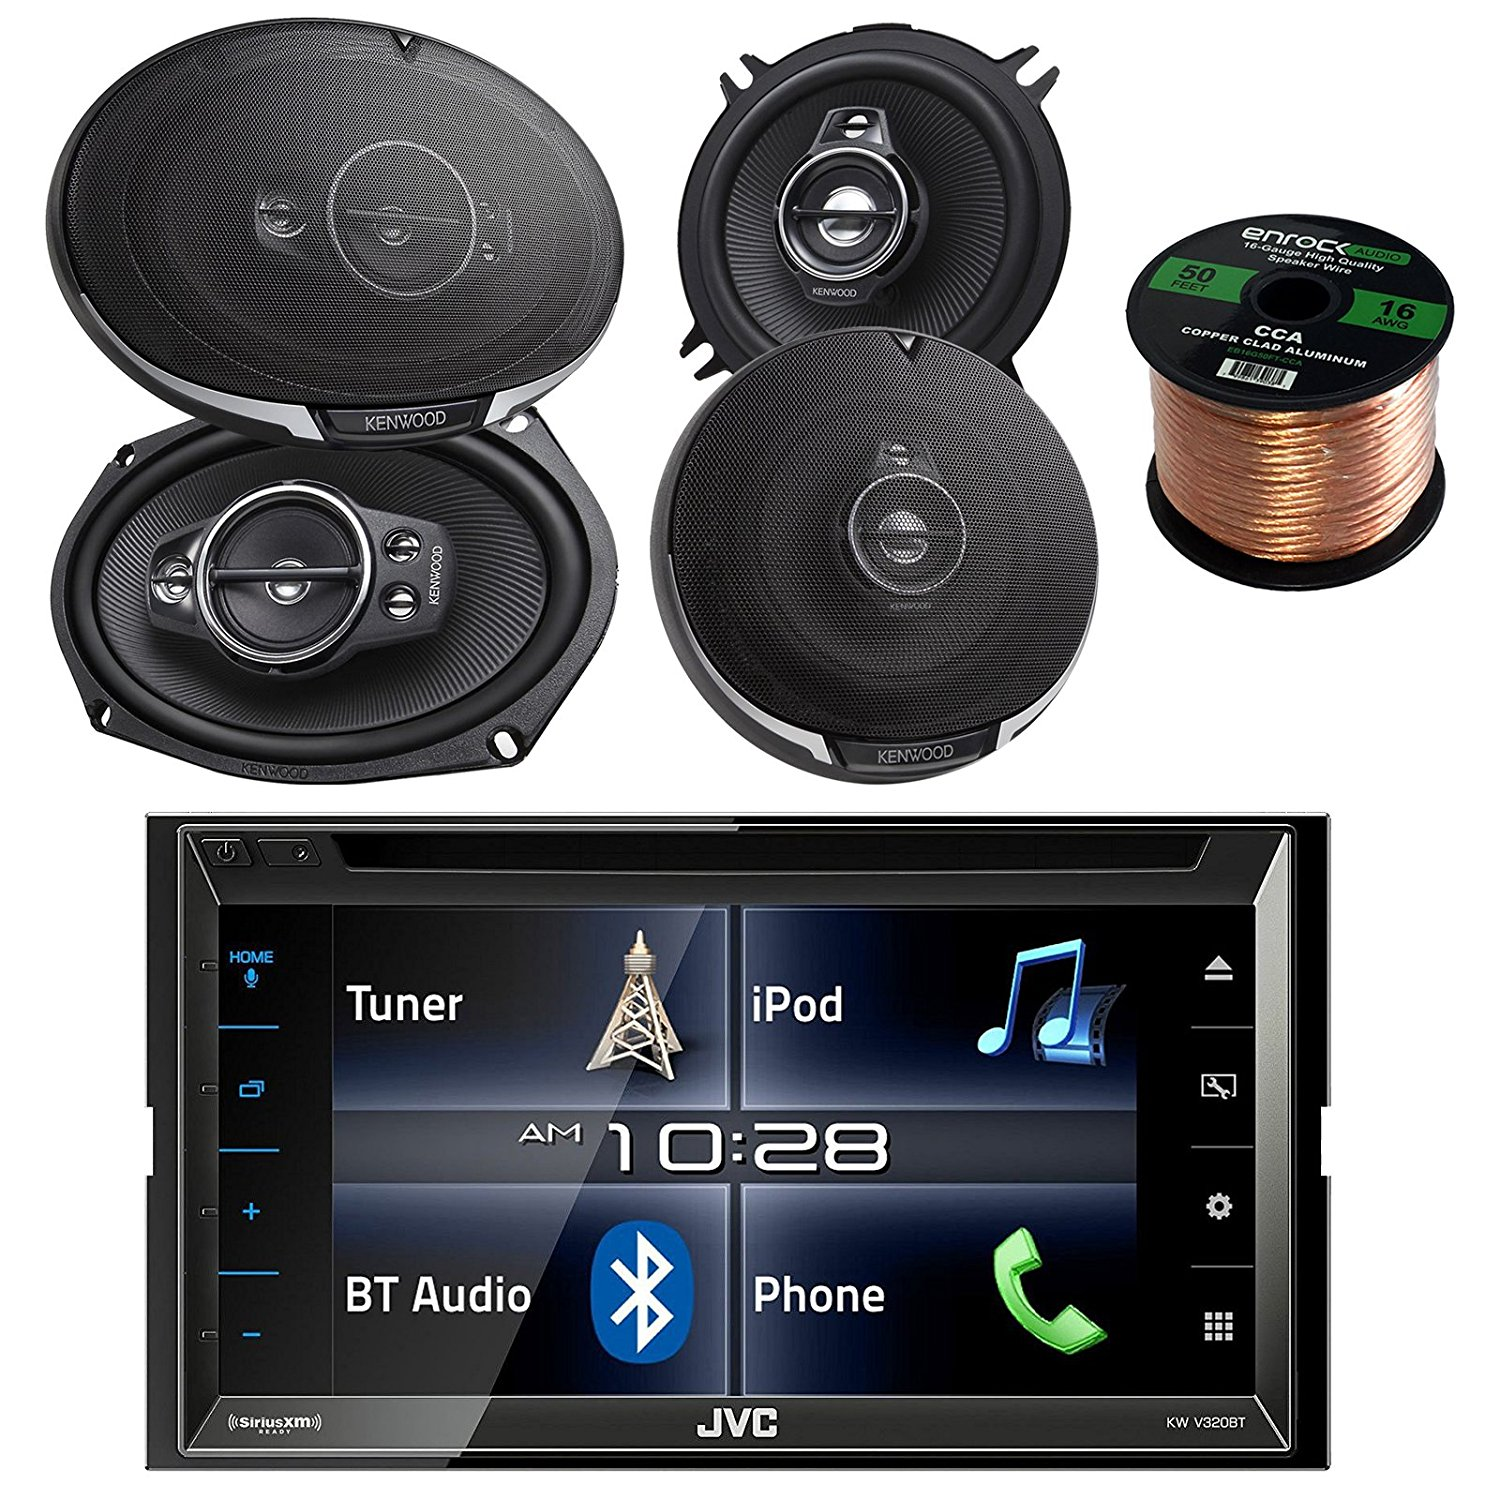 "JVC KWV320BT 6.8"" Touch Screen Car CD/DVD Bluetooth Stereo Receiver Bundle Combo With 2x Kenwood 6-1/2"" 3-Way And 2x 6x9"" Inch 5-Way Black Audio Coaxial Speakers + Enrock 50 Feet 16-Gauge Speaker Wire"